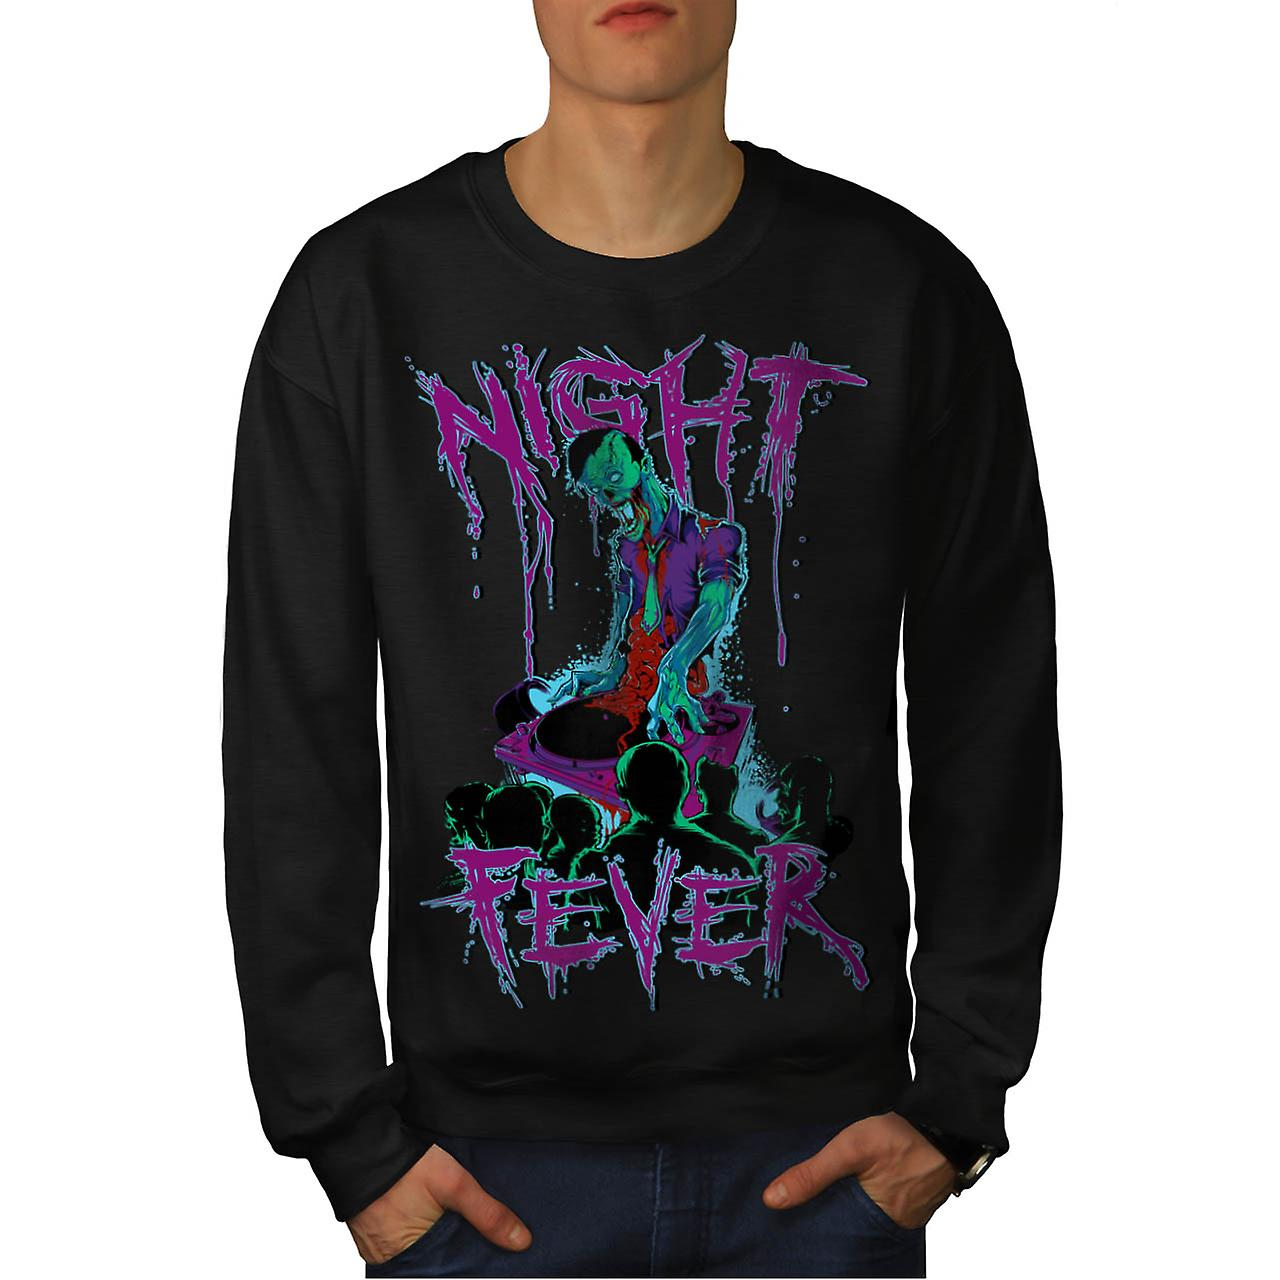 DJ Zombie Night Fever Undead Rip Men Black Sweatshirt | Wellcoda